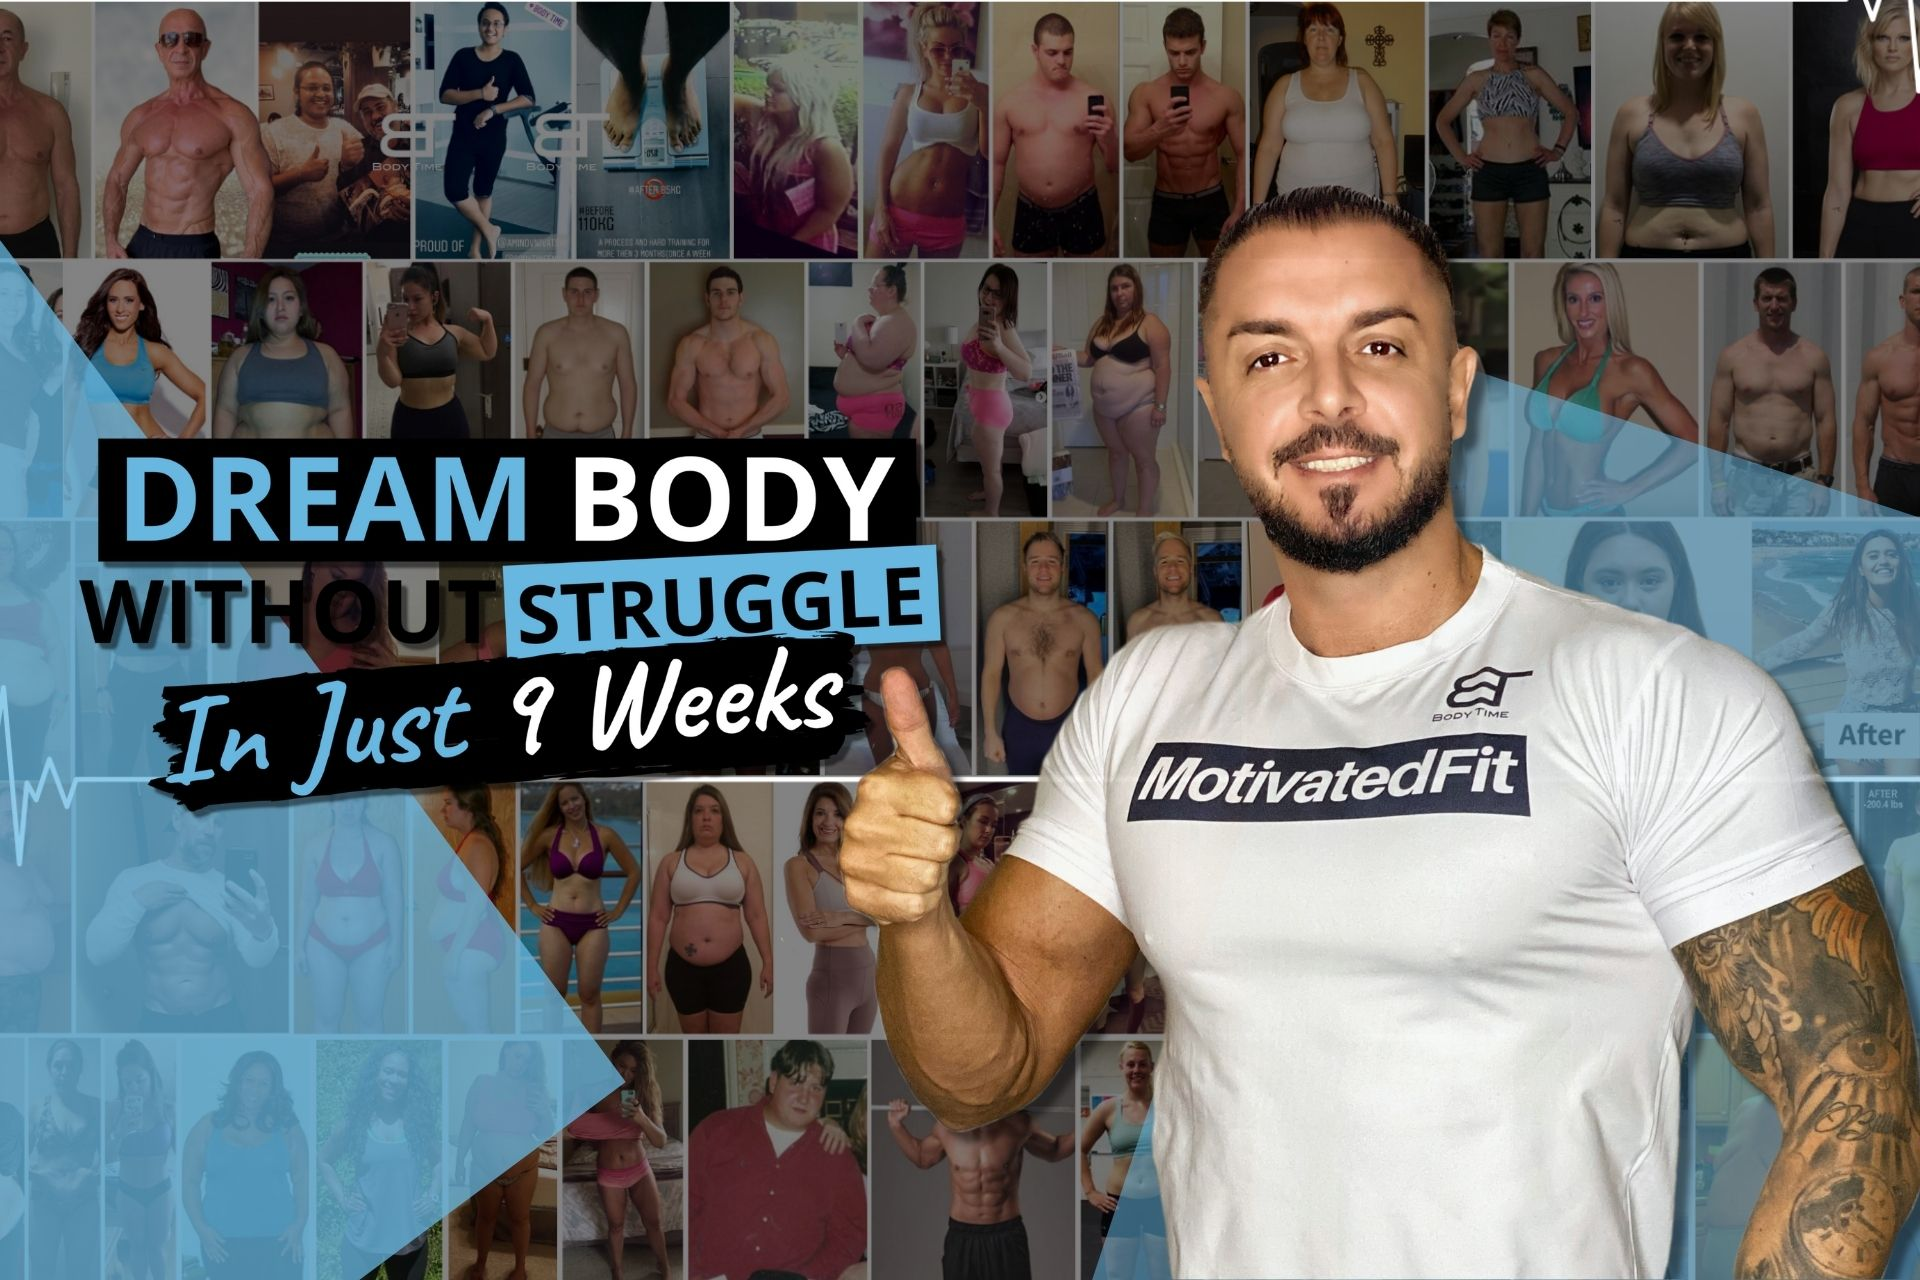 Get Fit with The MotivatedFit Program